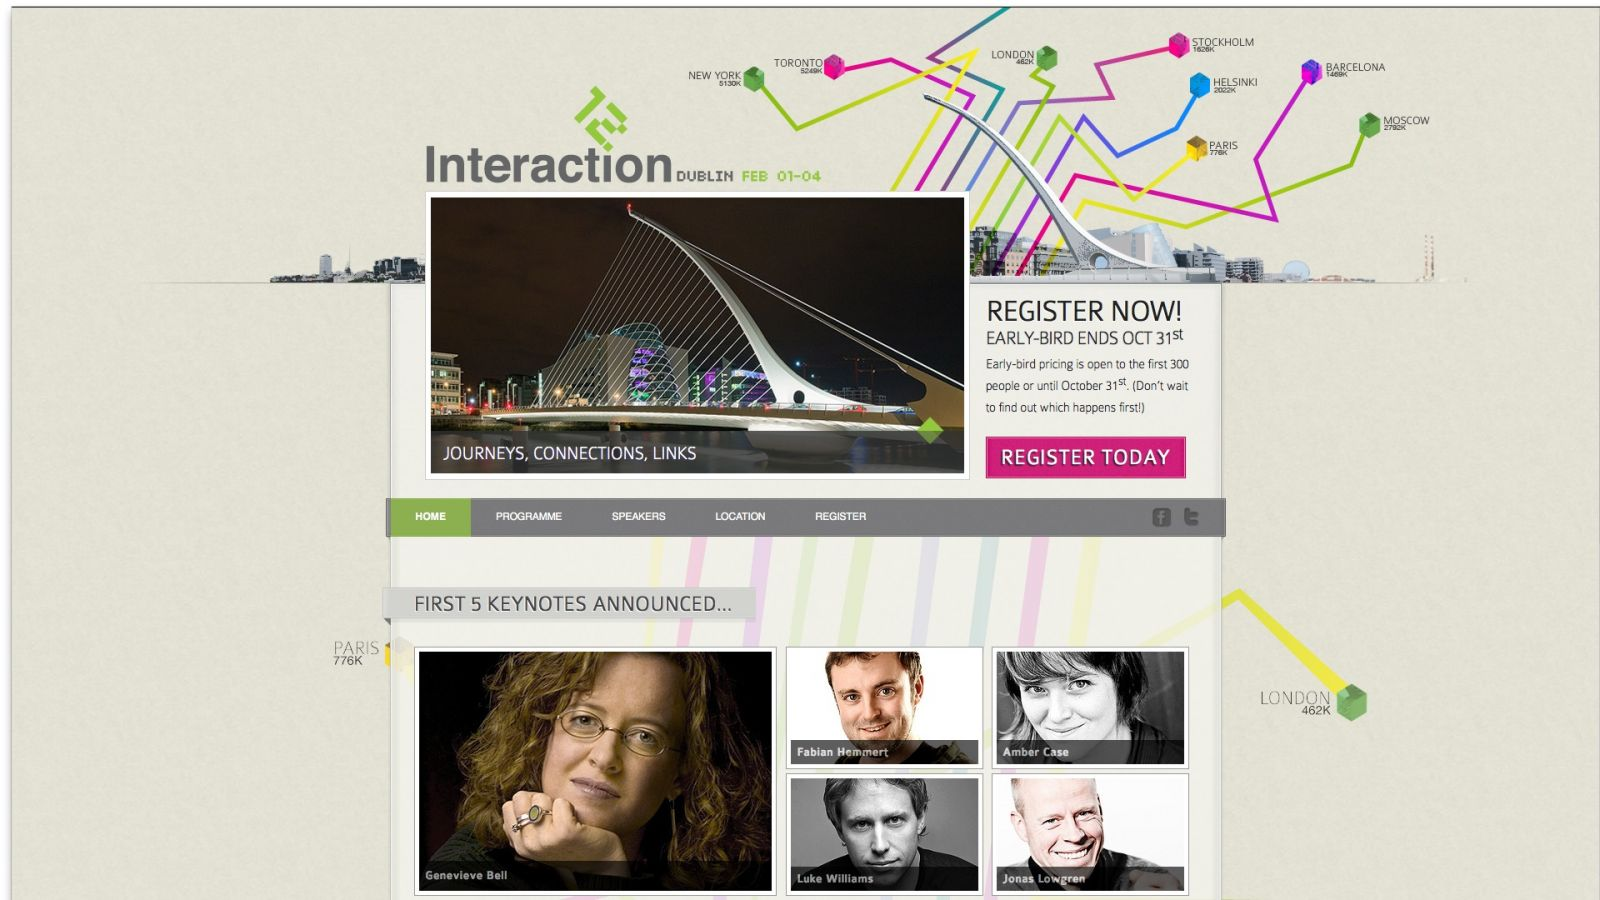 The talks at Interaction12, to be held in Dublin from 1 to 4 February, are chosen by a conference committee